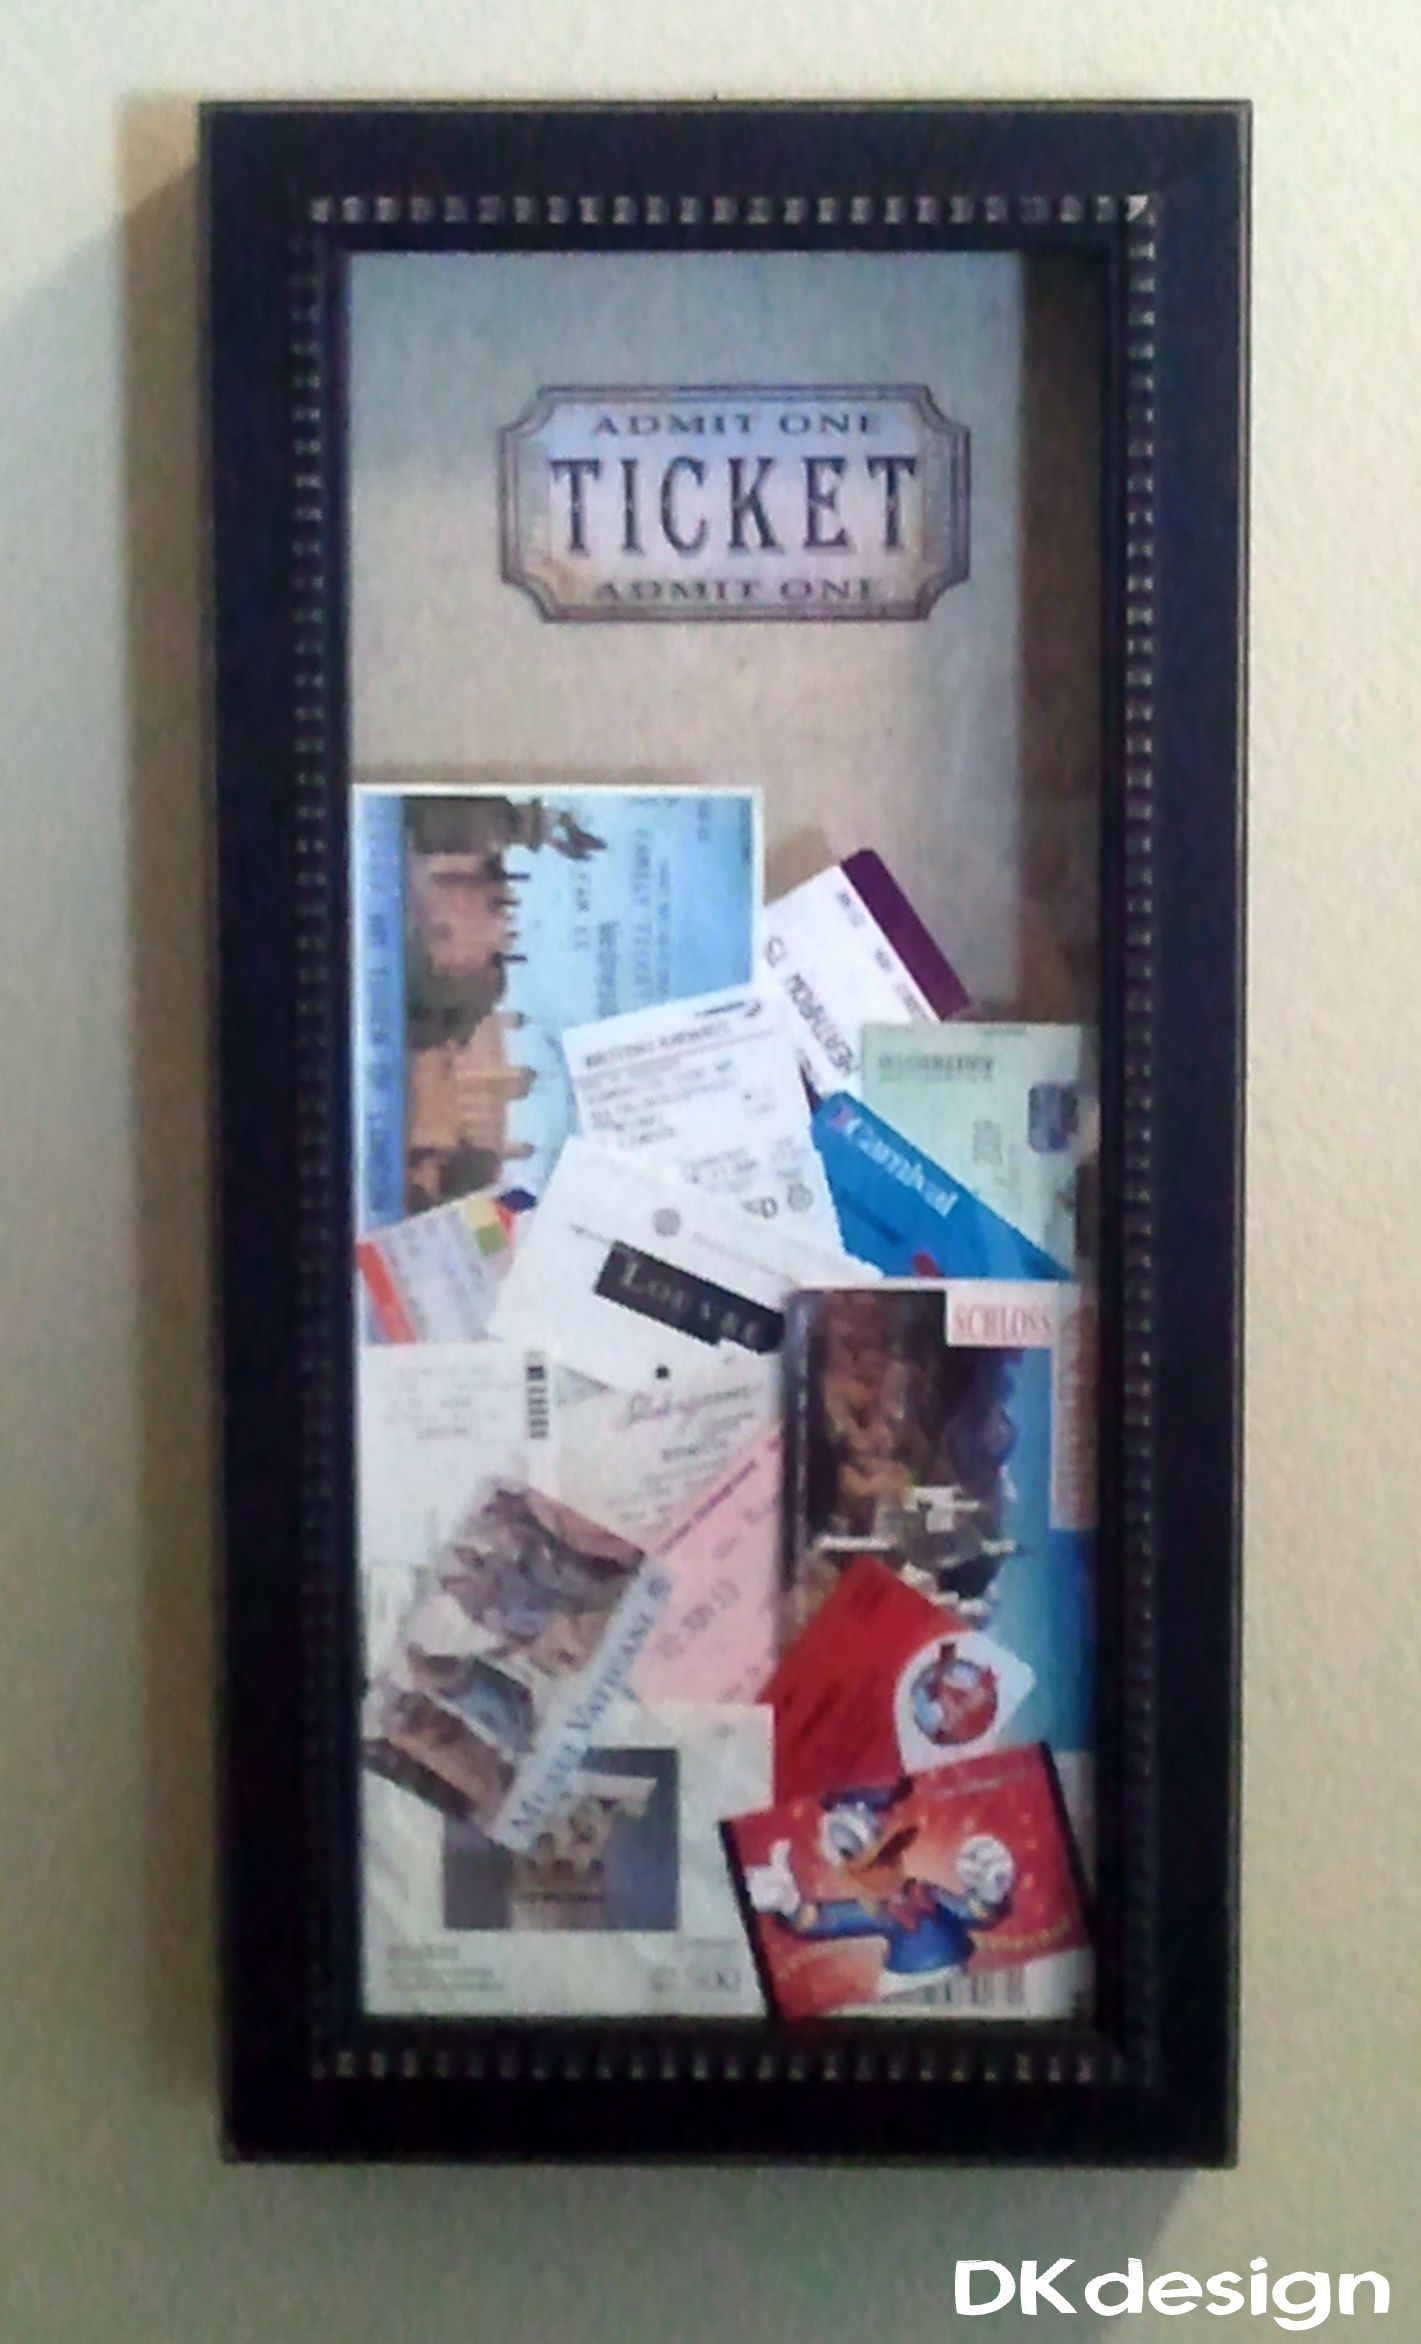 "Great place to keep all of the ticket stubs from our travels and special events. 10"" X 20"" Shadow box from Hobby Lobby $20.00 (40% off) and printed a picture of an old fashion ticket for the background. Cut a slot in the top to drop the tickets."